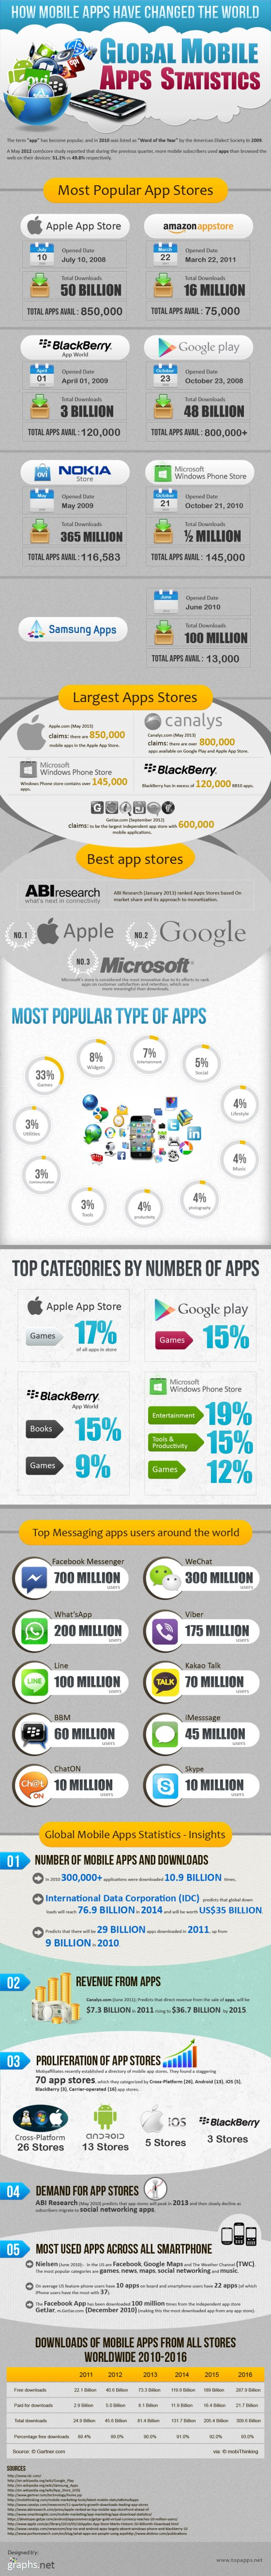 Infographic: How Mobile Apps have changed the world